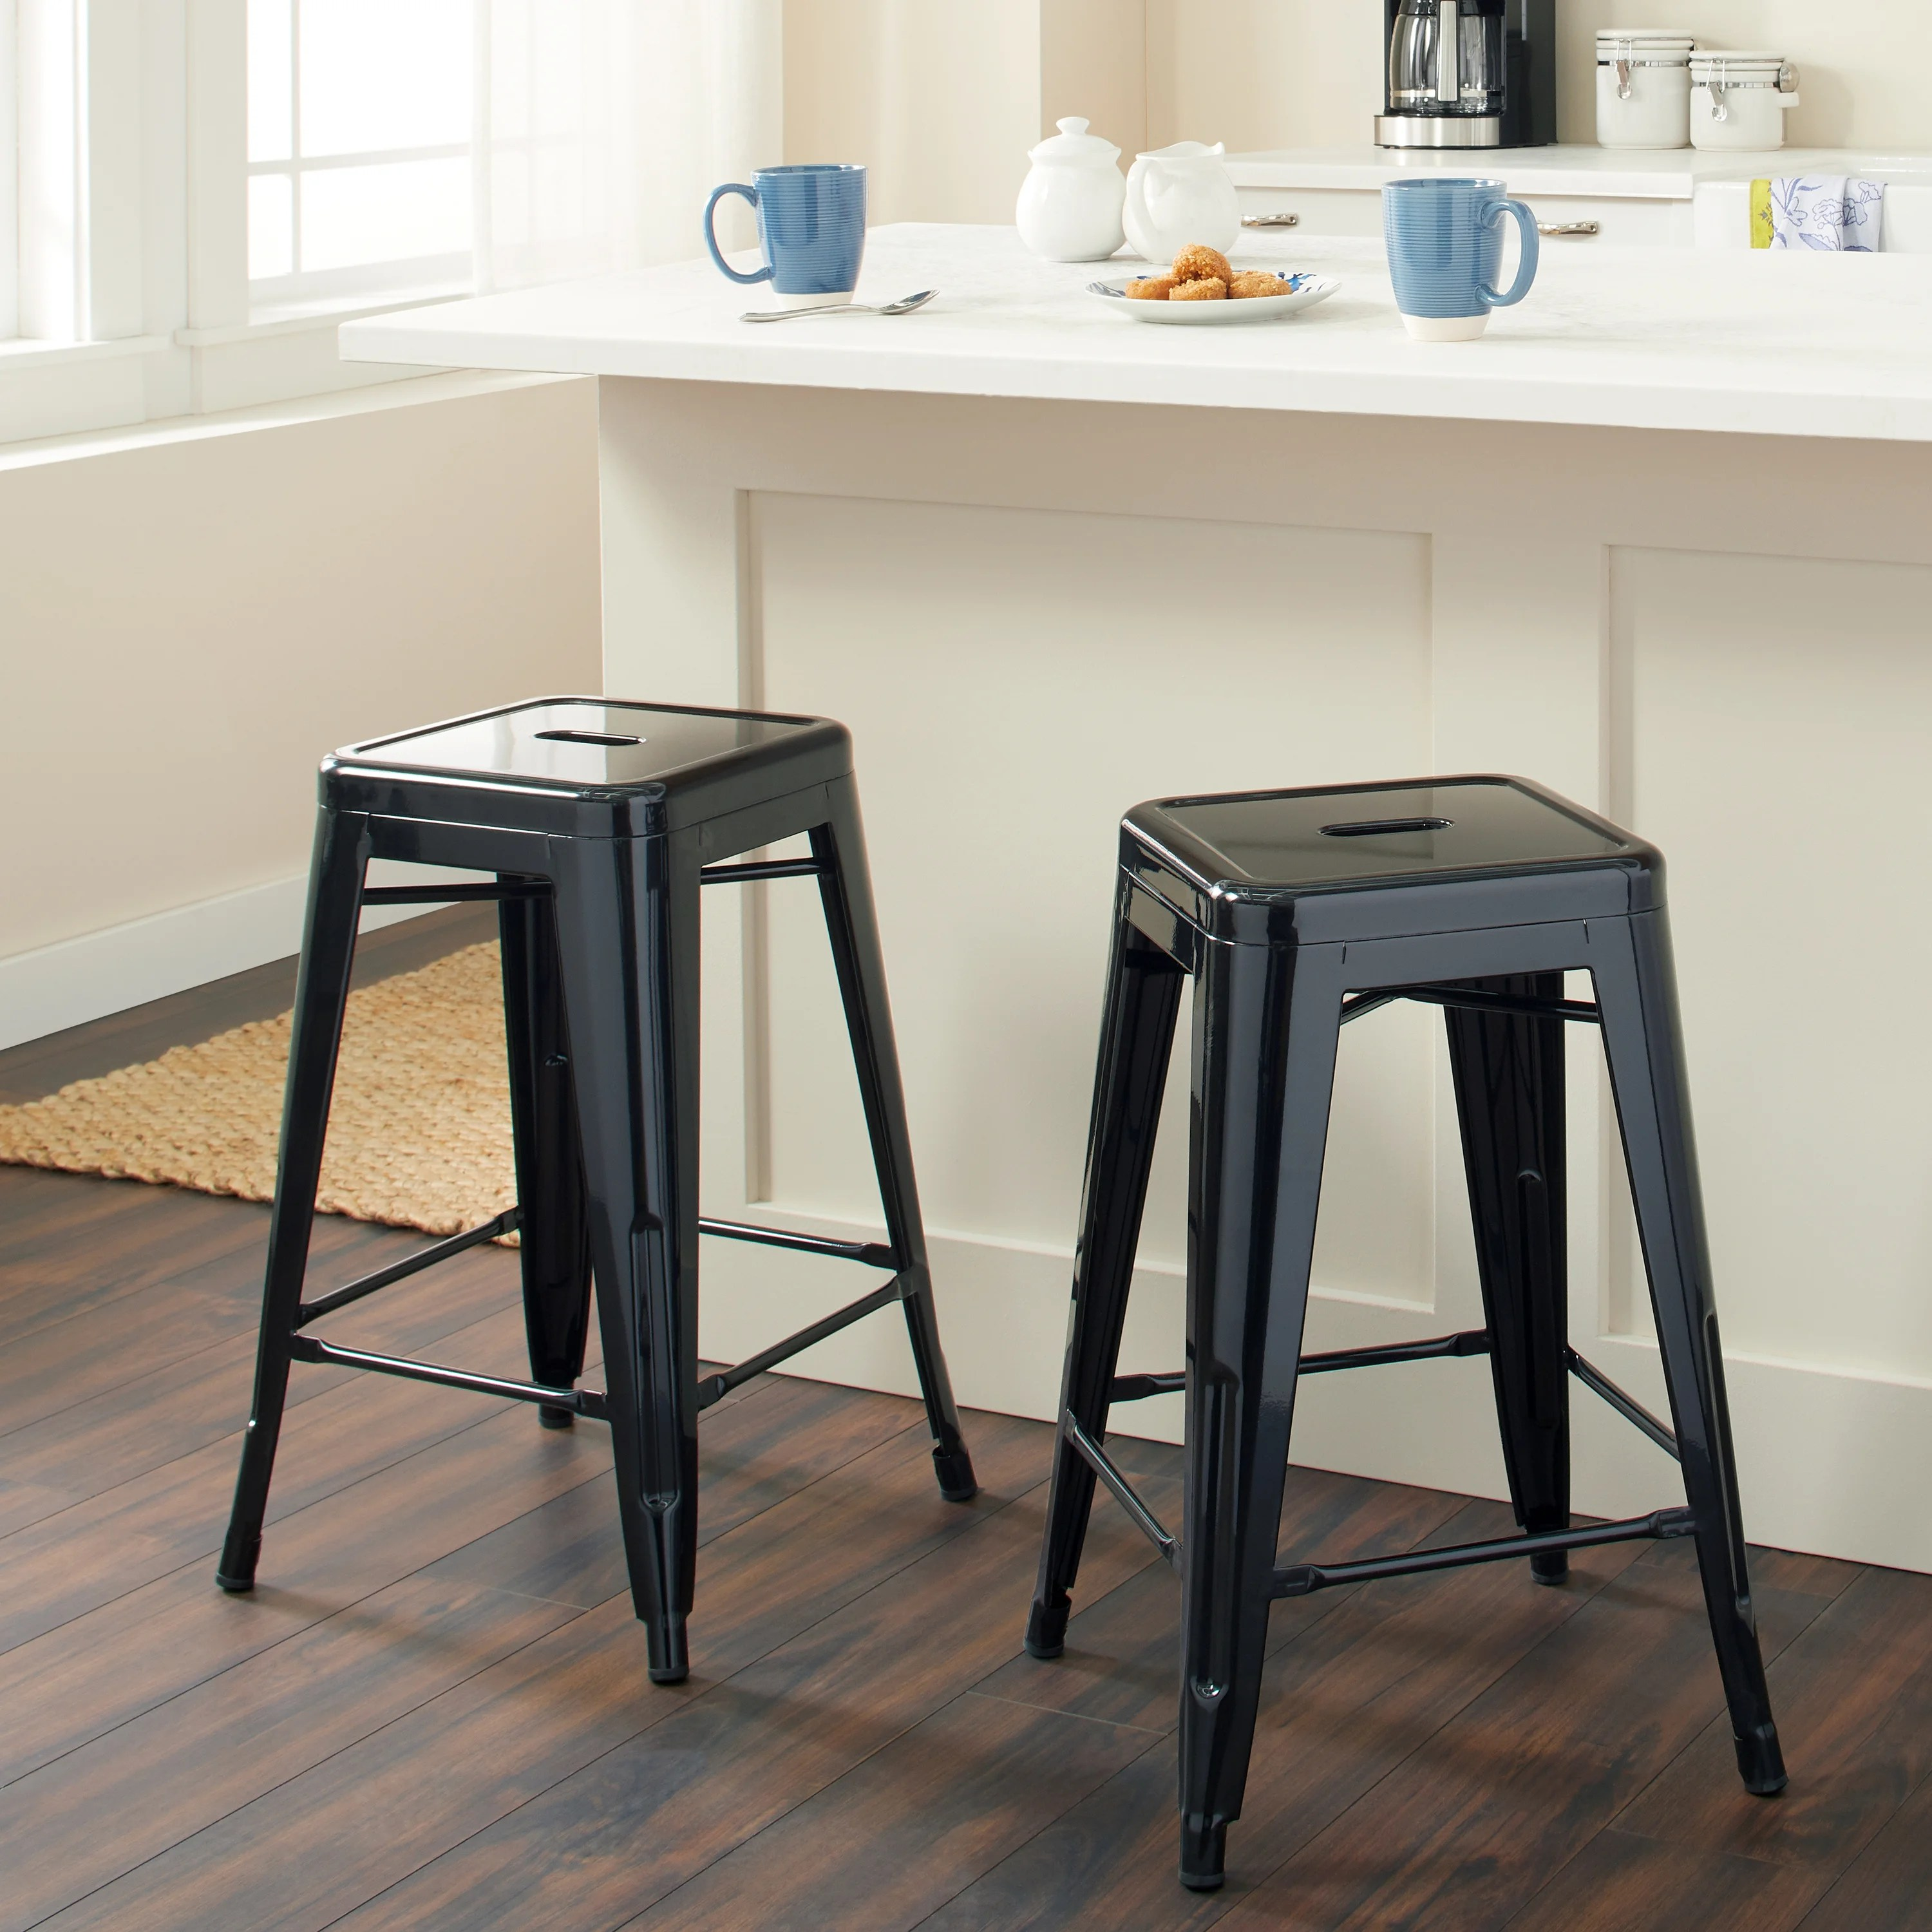 Metal Stools Tabouret 24 Inch Black Metal Counter Stools Set Of 2